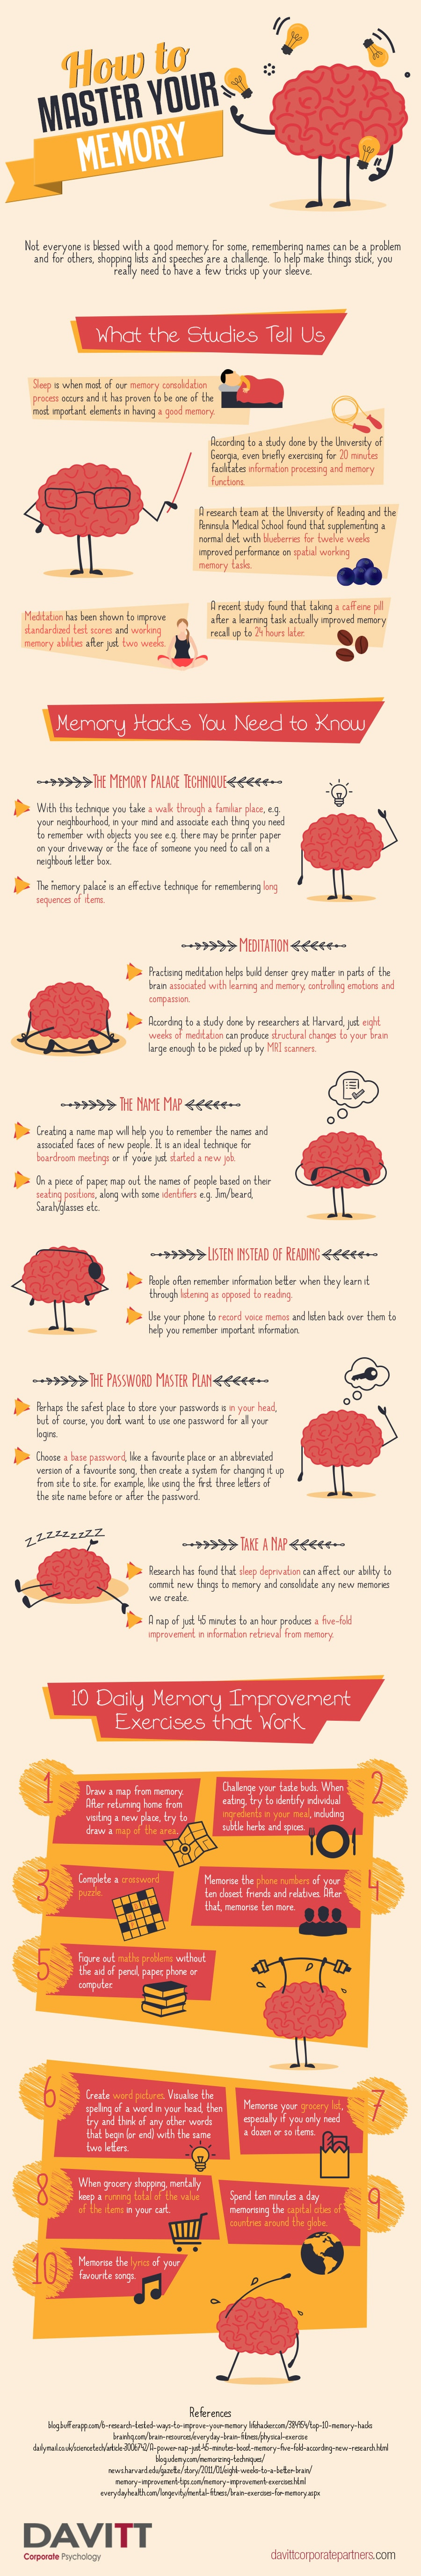 How-to-Master-Your-Memory-Infographic